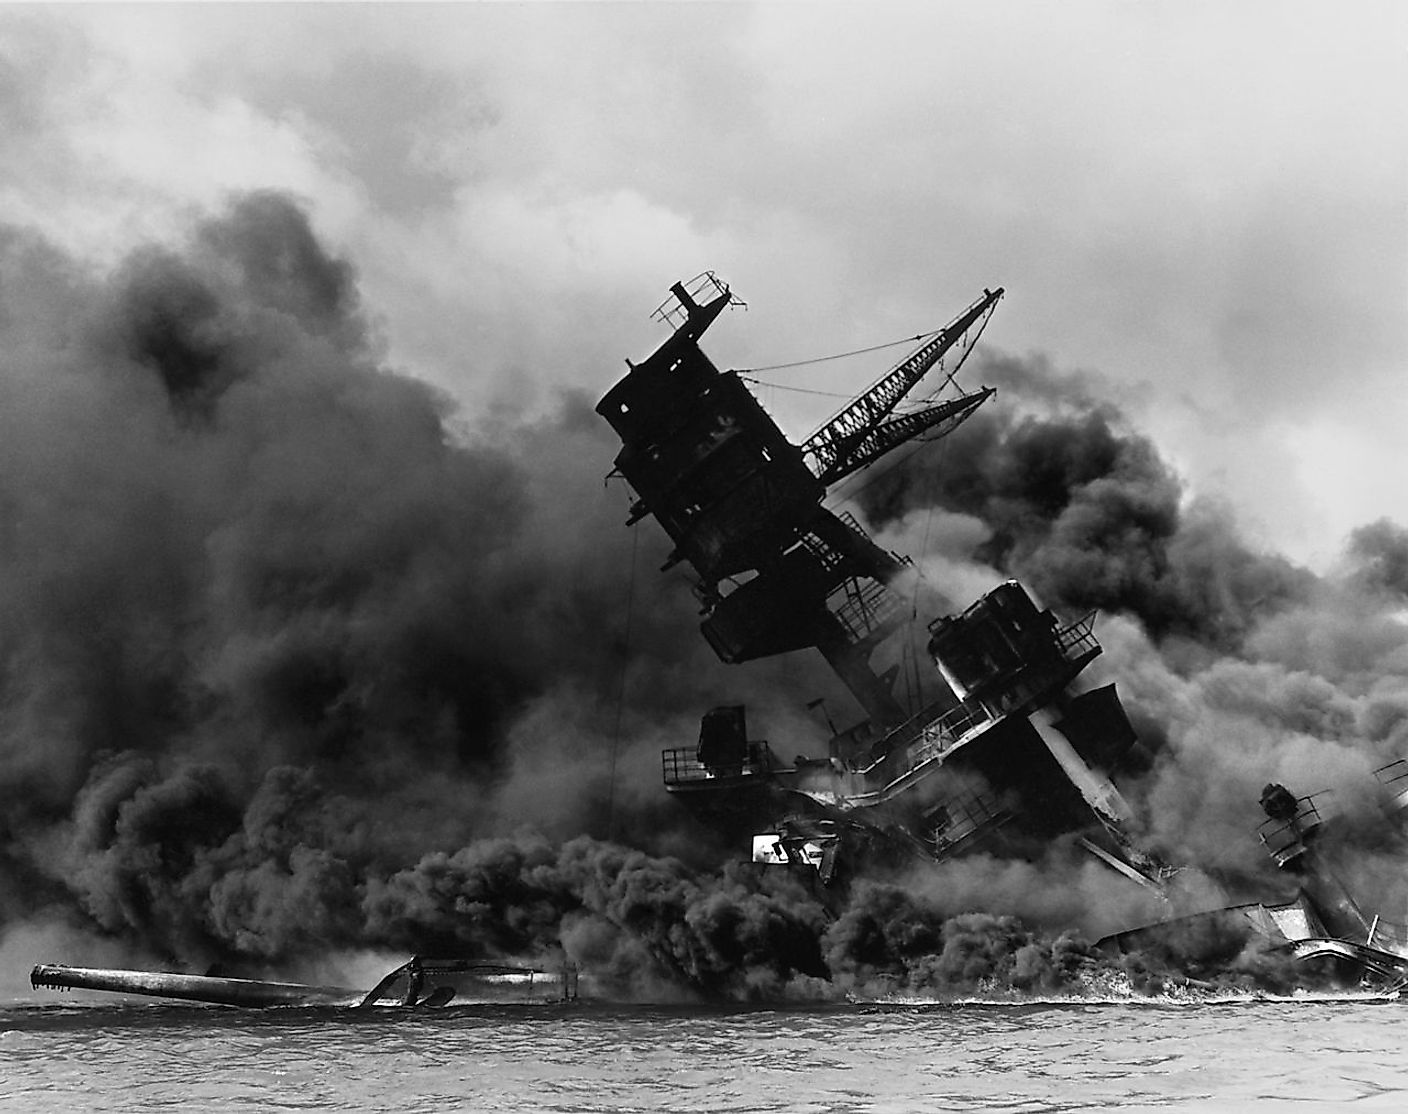 The USS Arizona (BB-39) burning after the Japanese attack on Pearl Harbor.